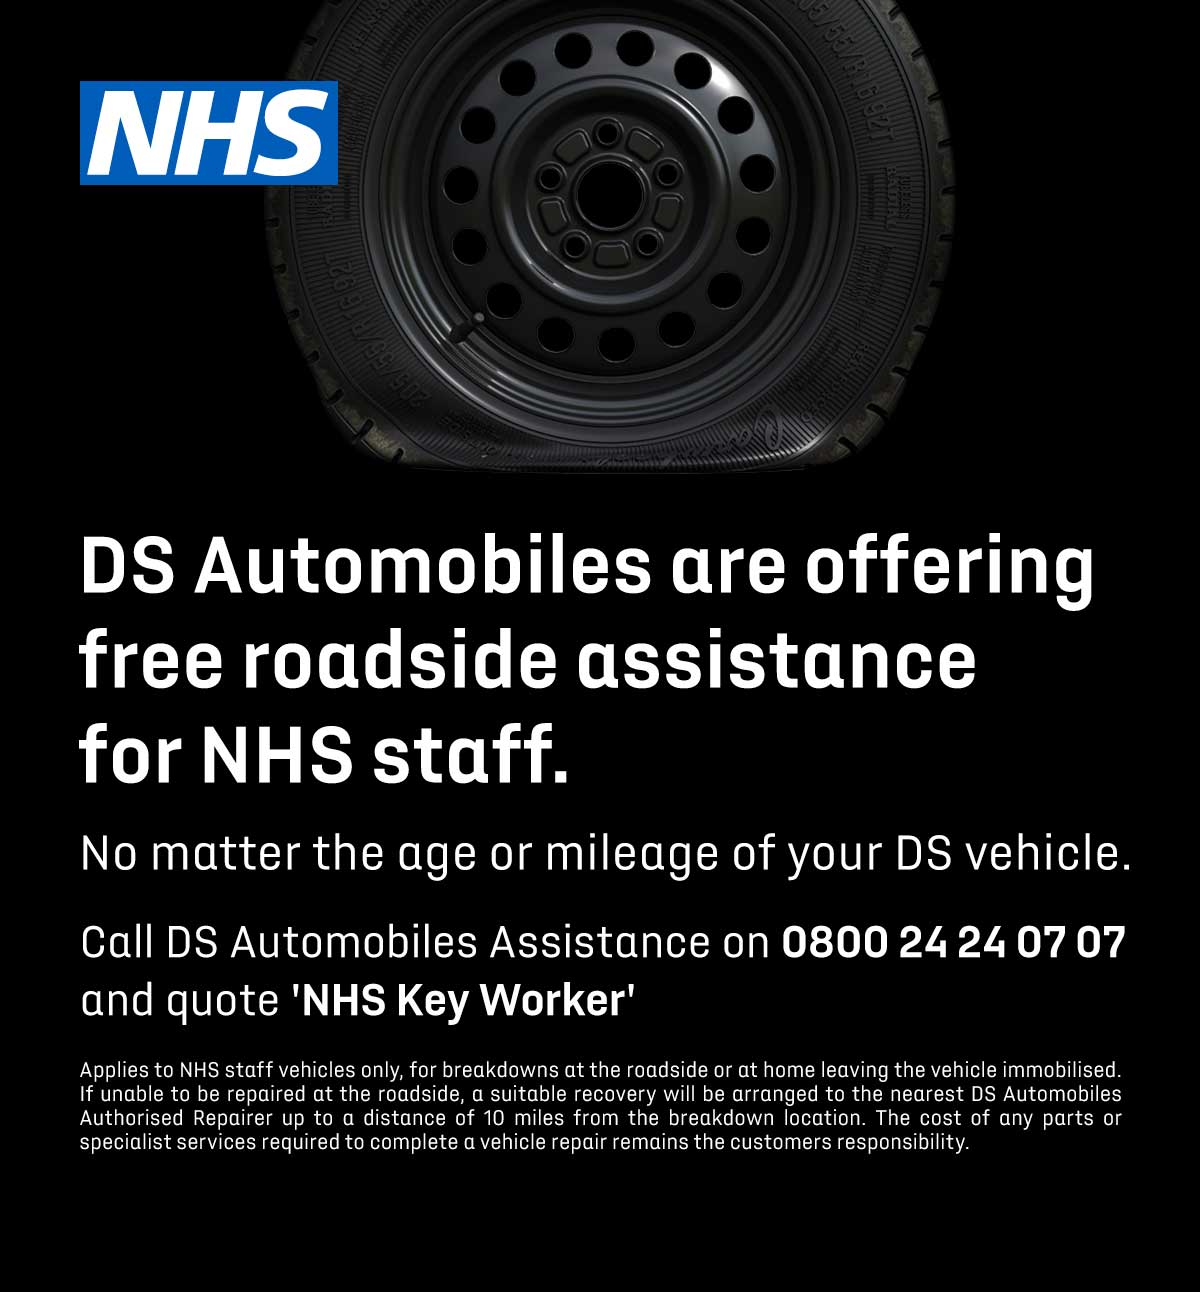 DS NHS Free Roadside Assistance